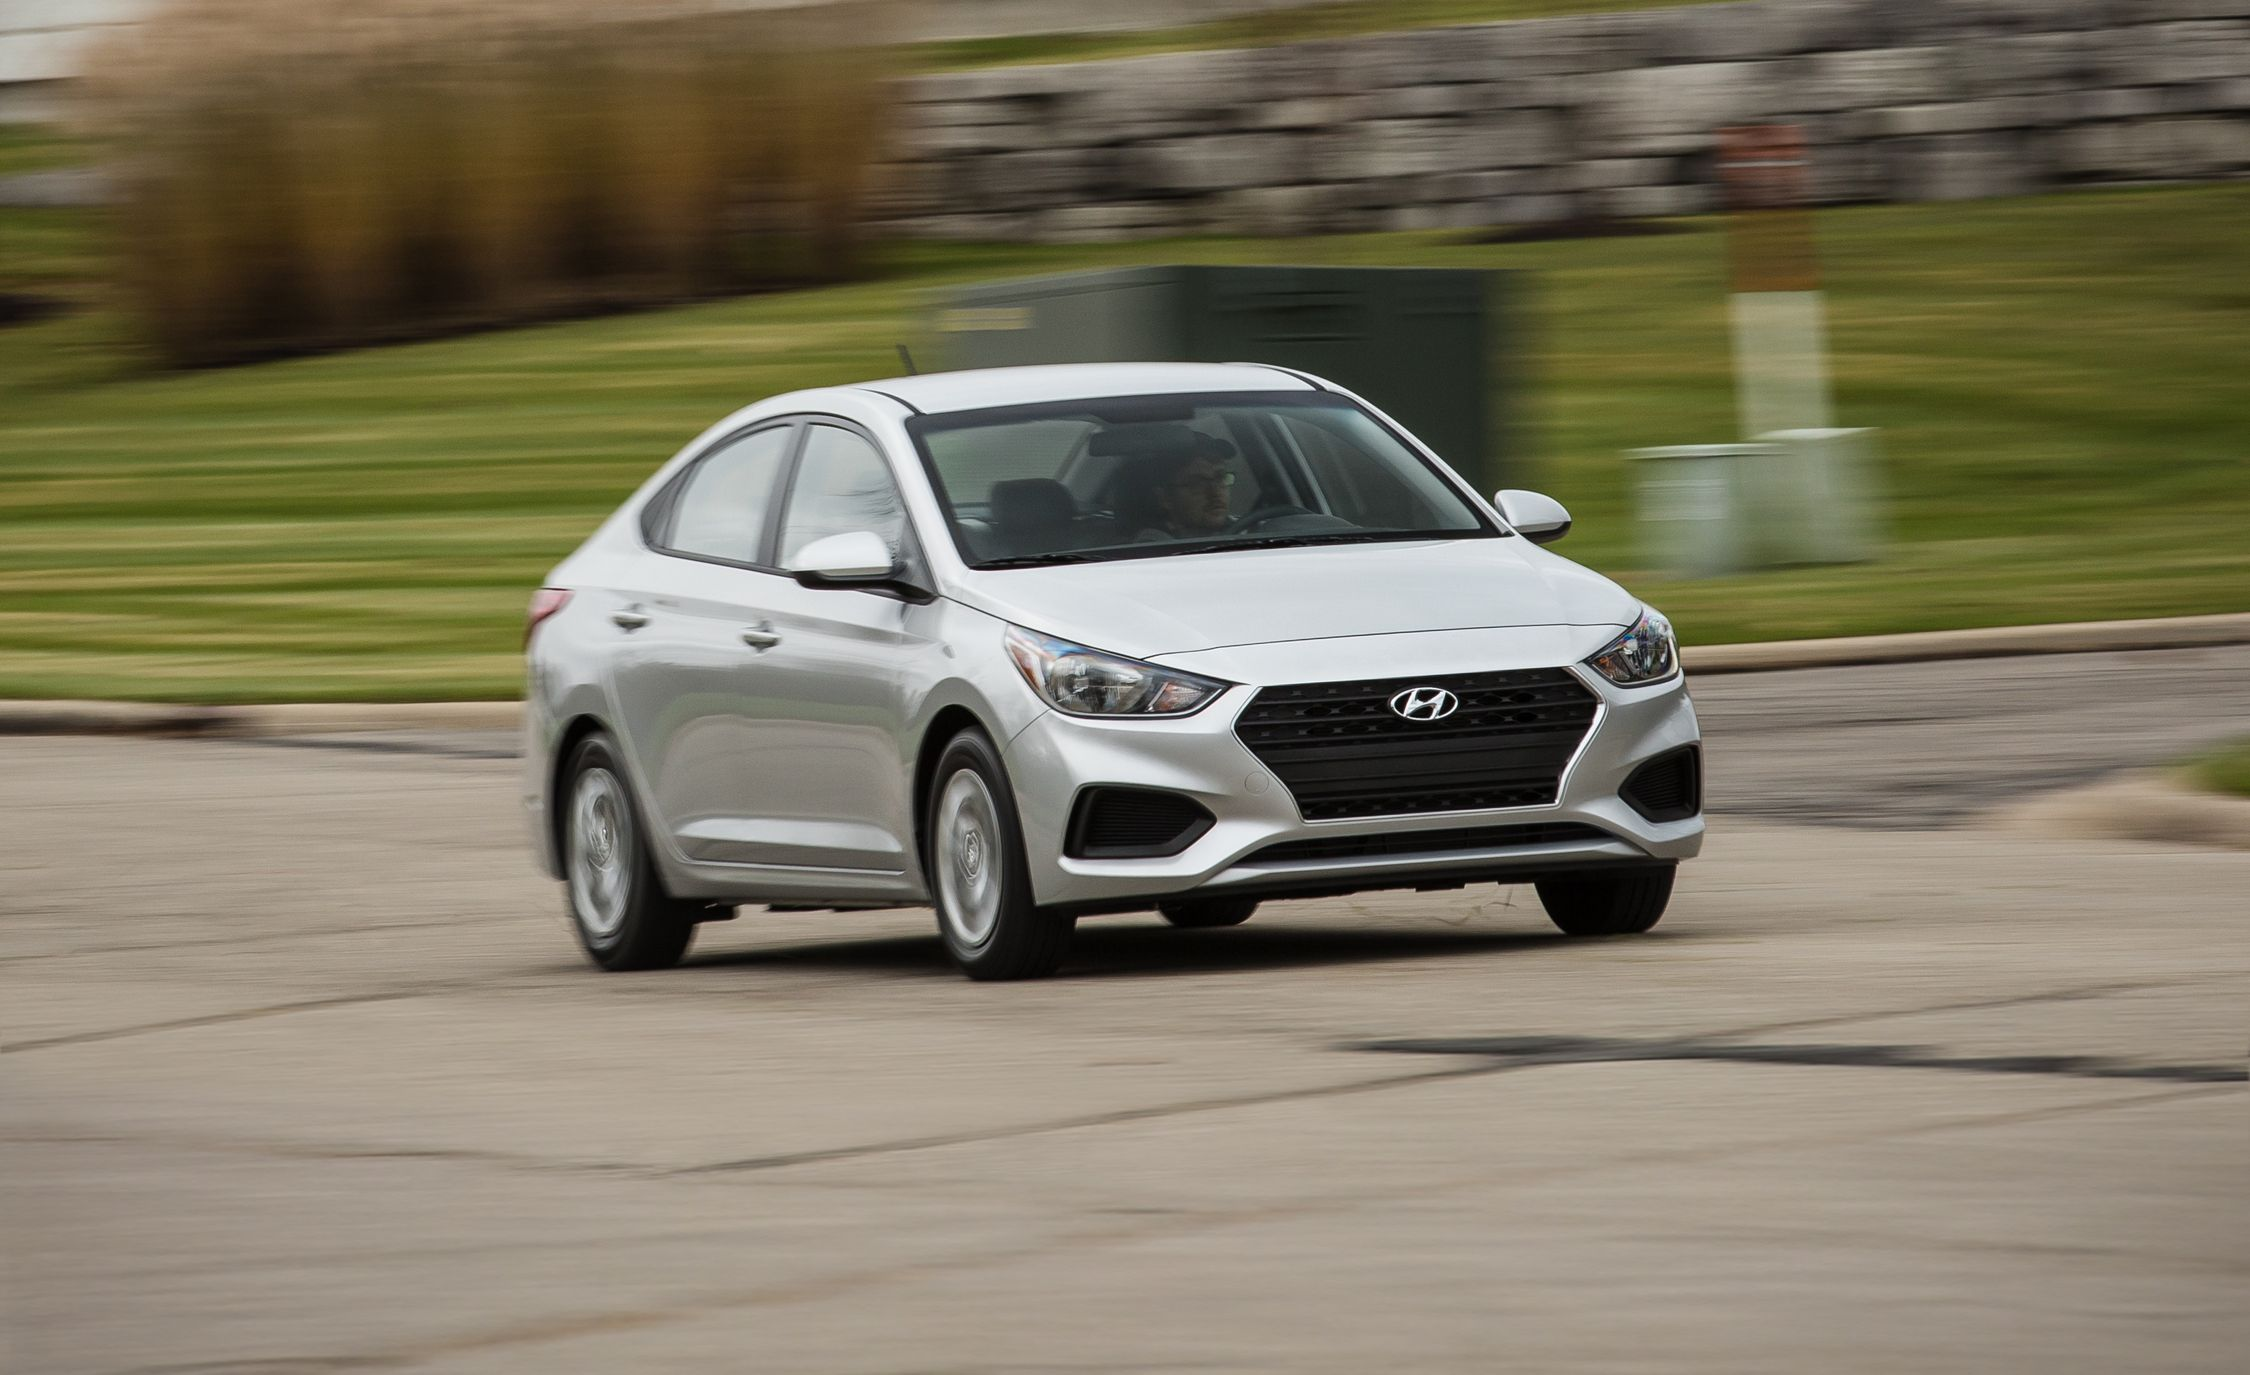 Hyundai Accent Hatchback 2017 Review >> 2017 Ford Fiesta Hatchback Automatic Test   Review   Car and Driver